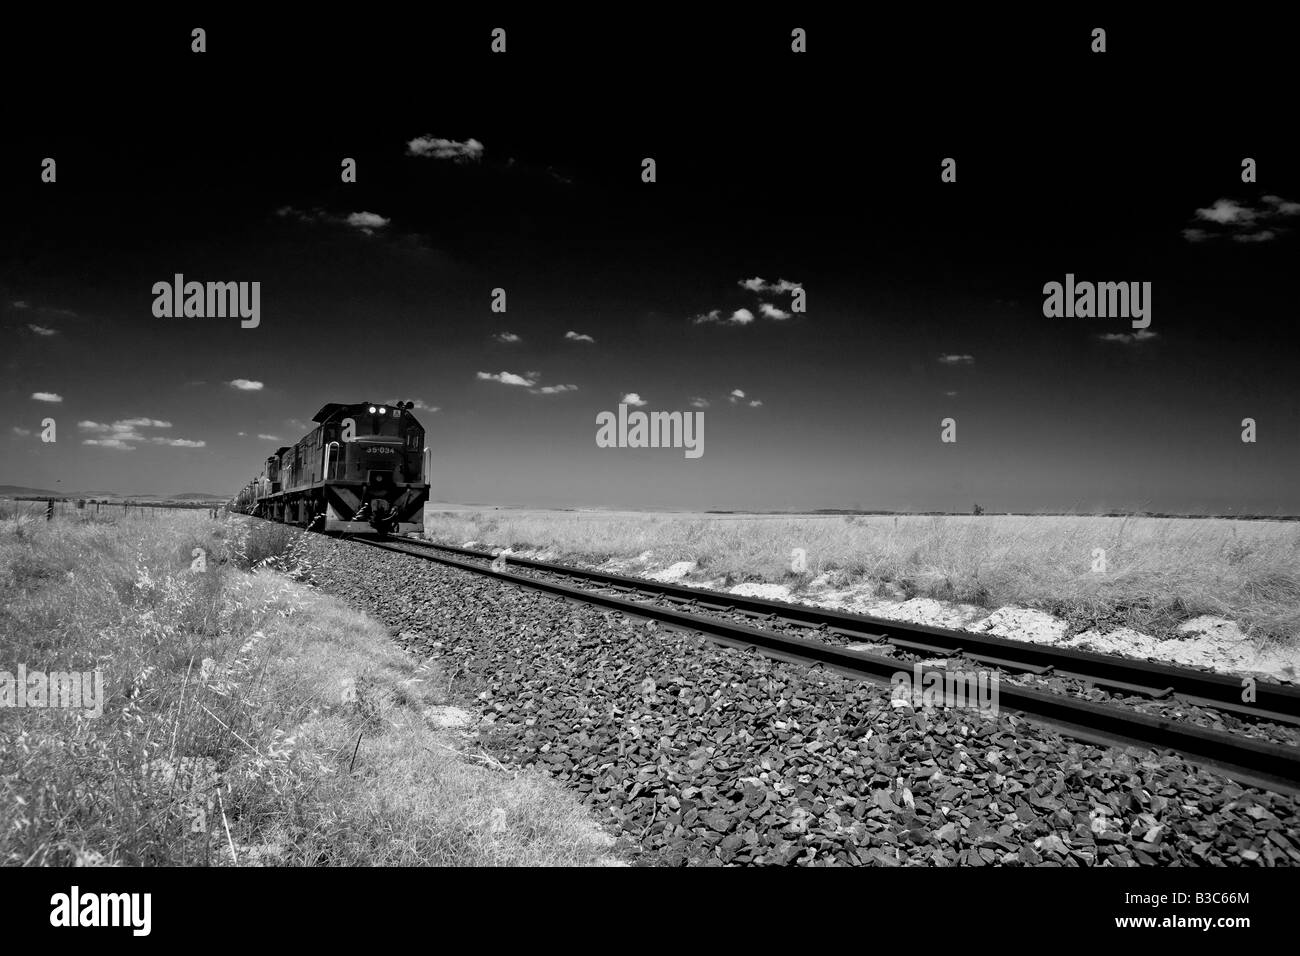 South Africa, Western Cape, cape Province. Darling. One of the longest ore train in the worlds crosses the open - Stock Image